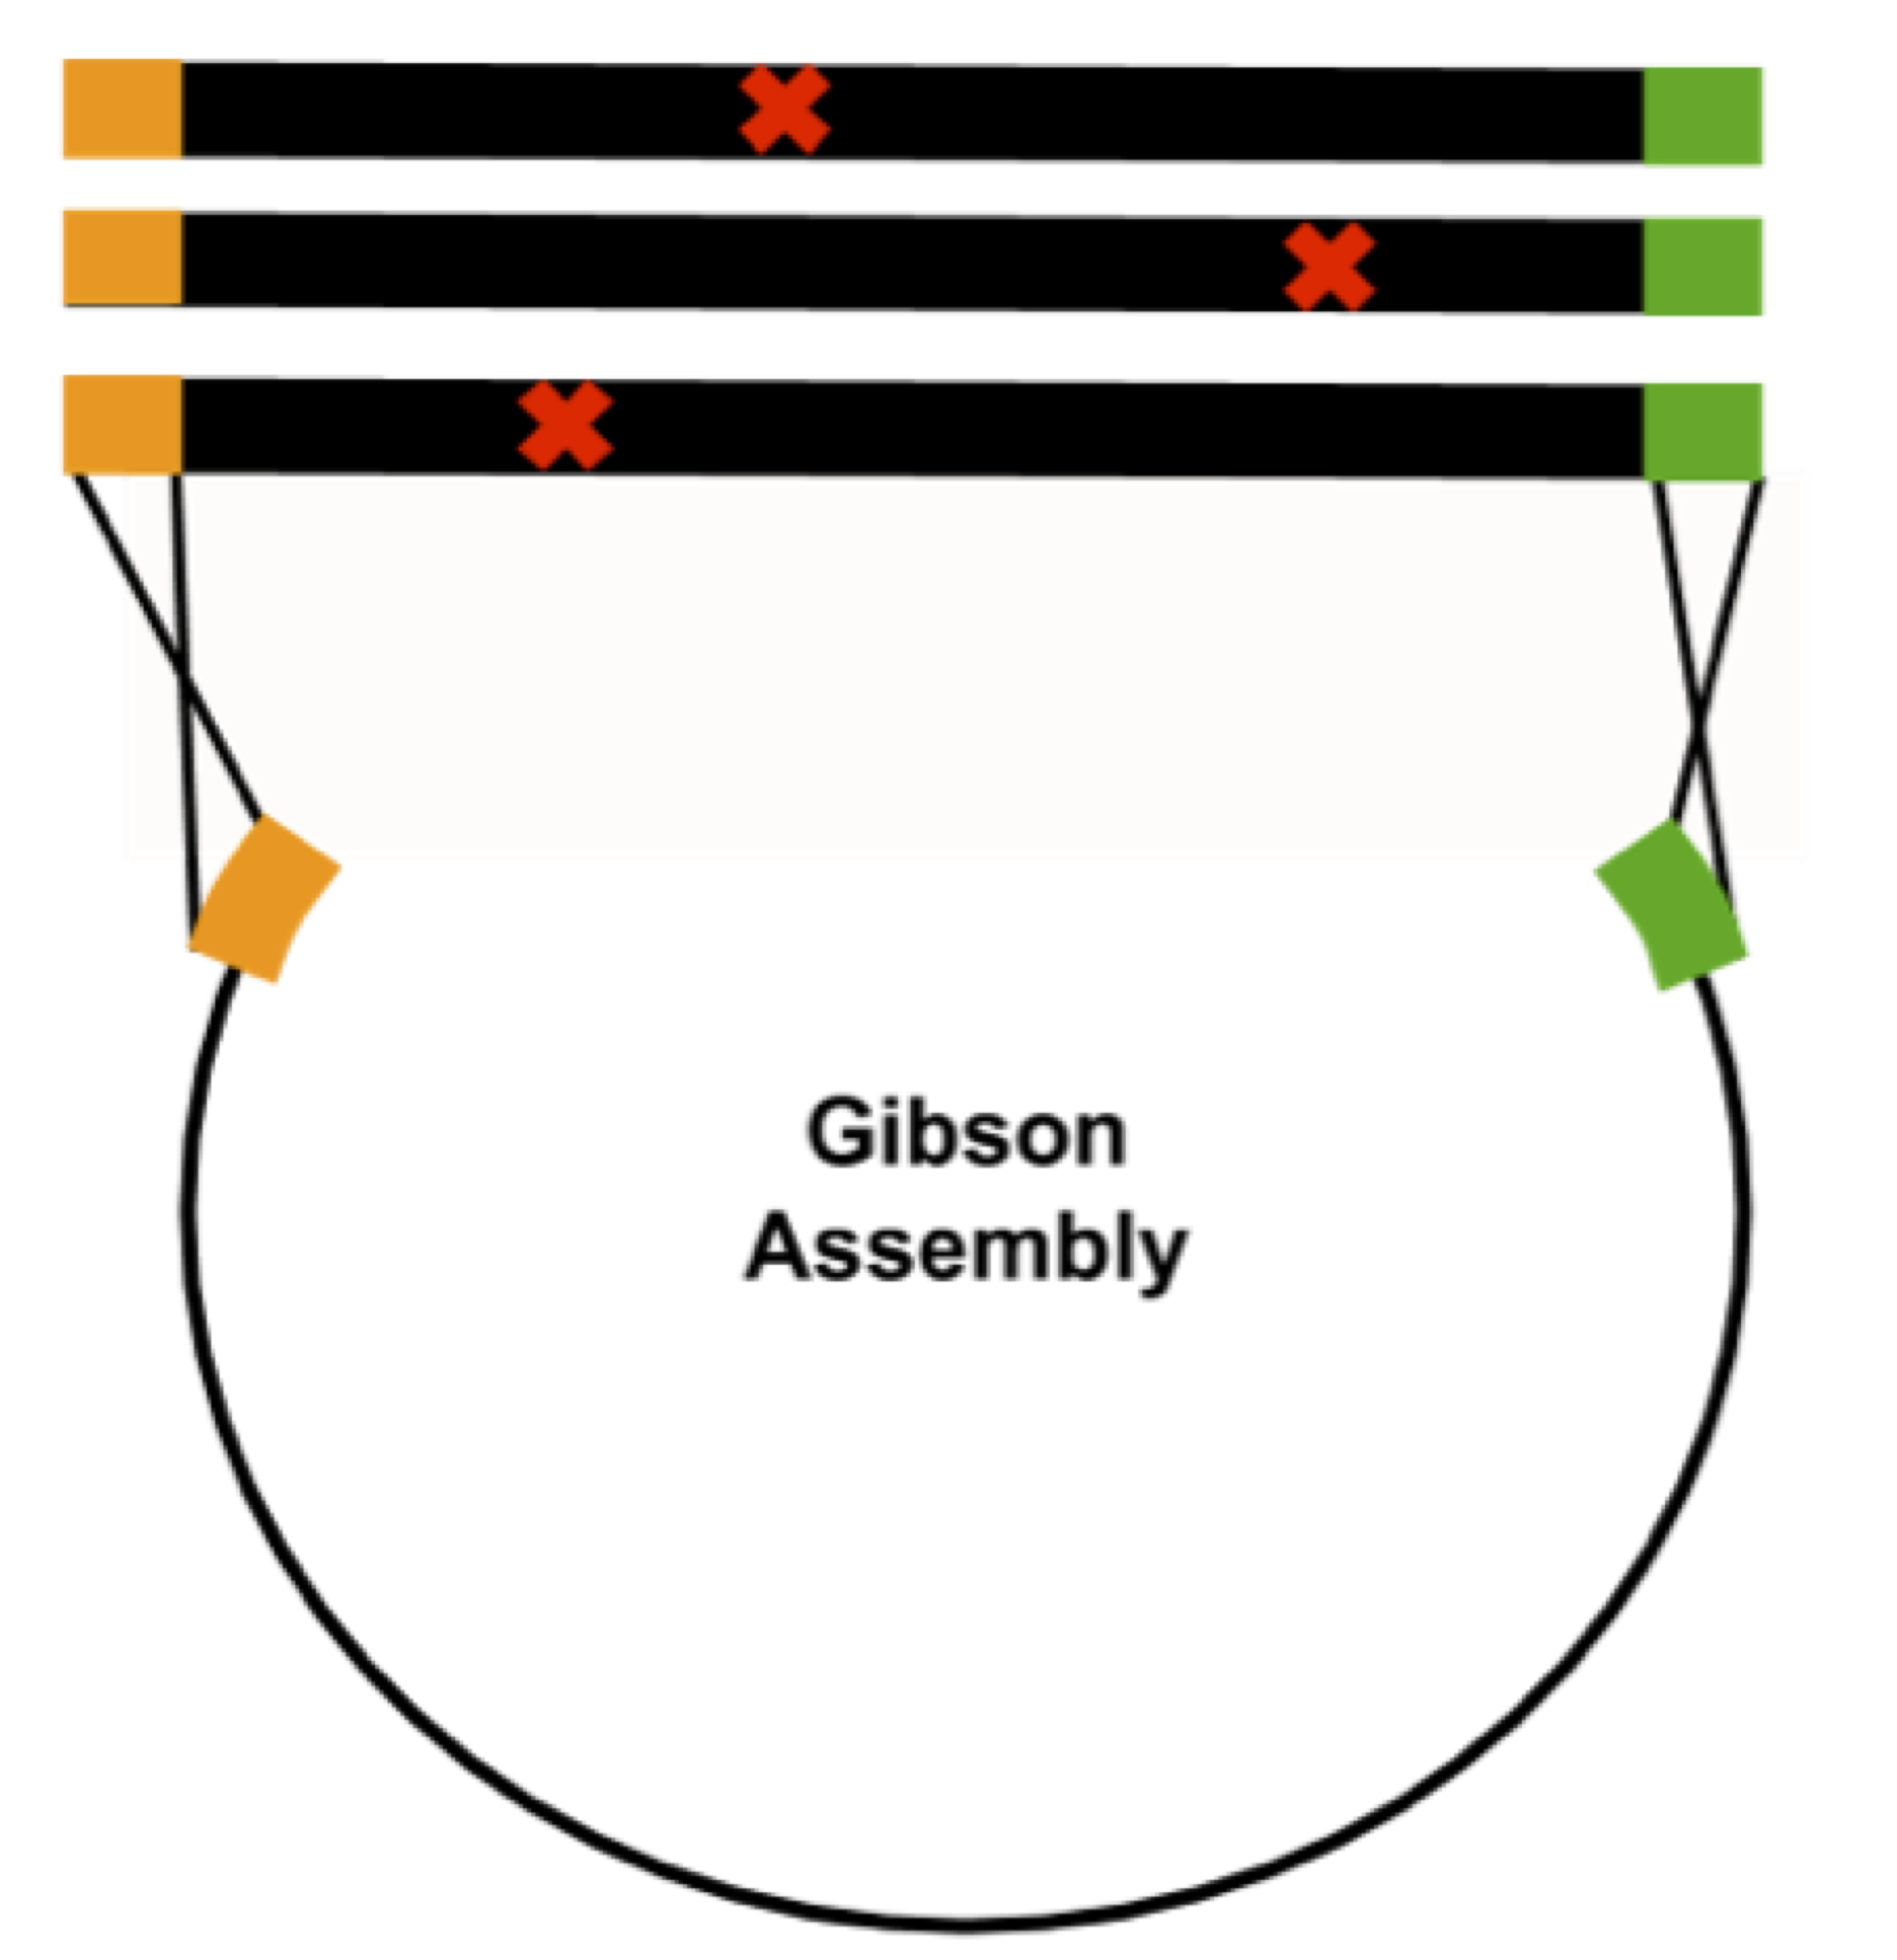 Gibson-Assembly.png